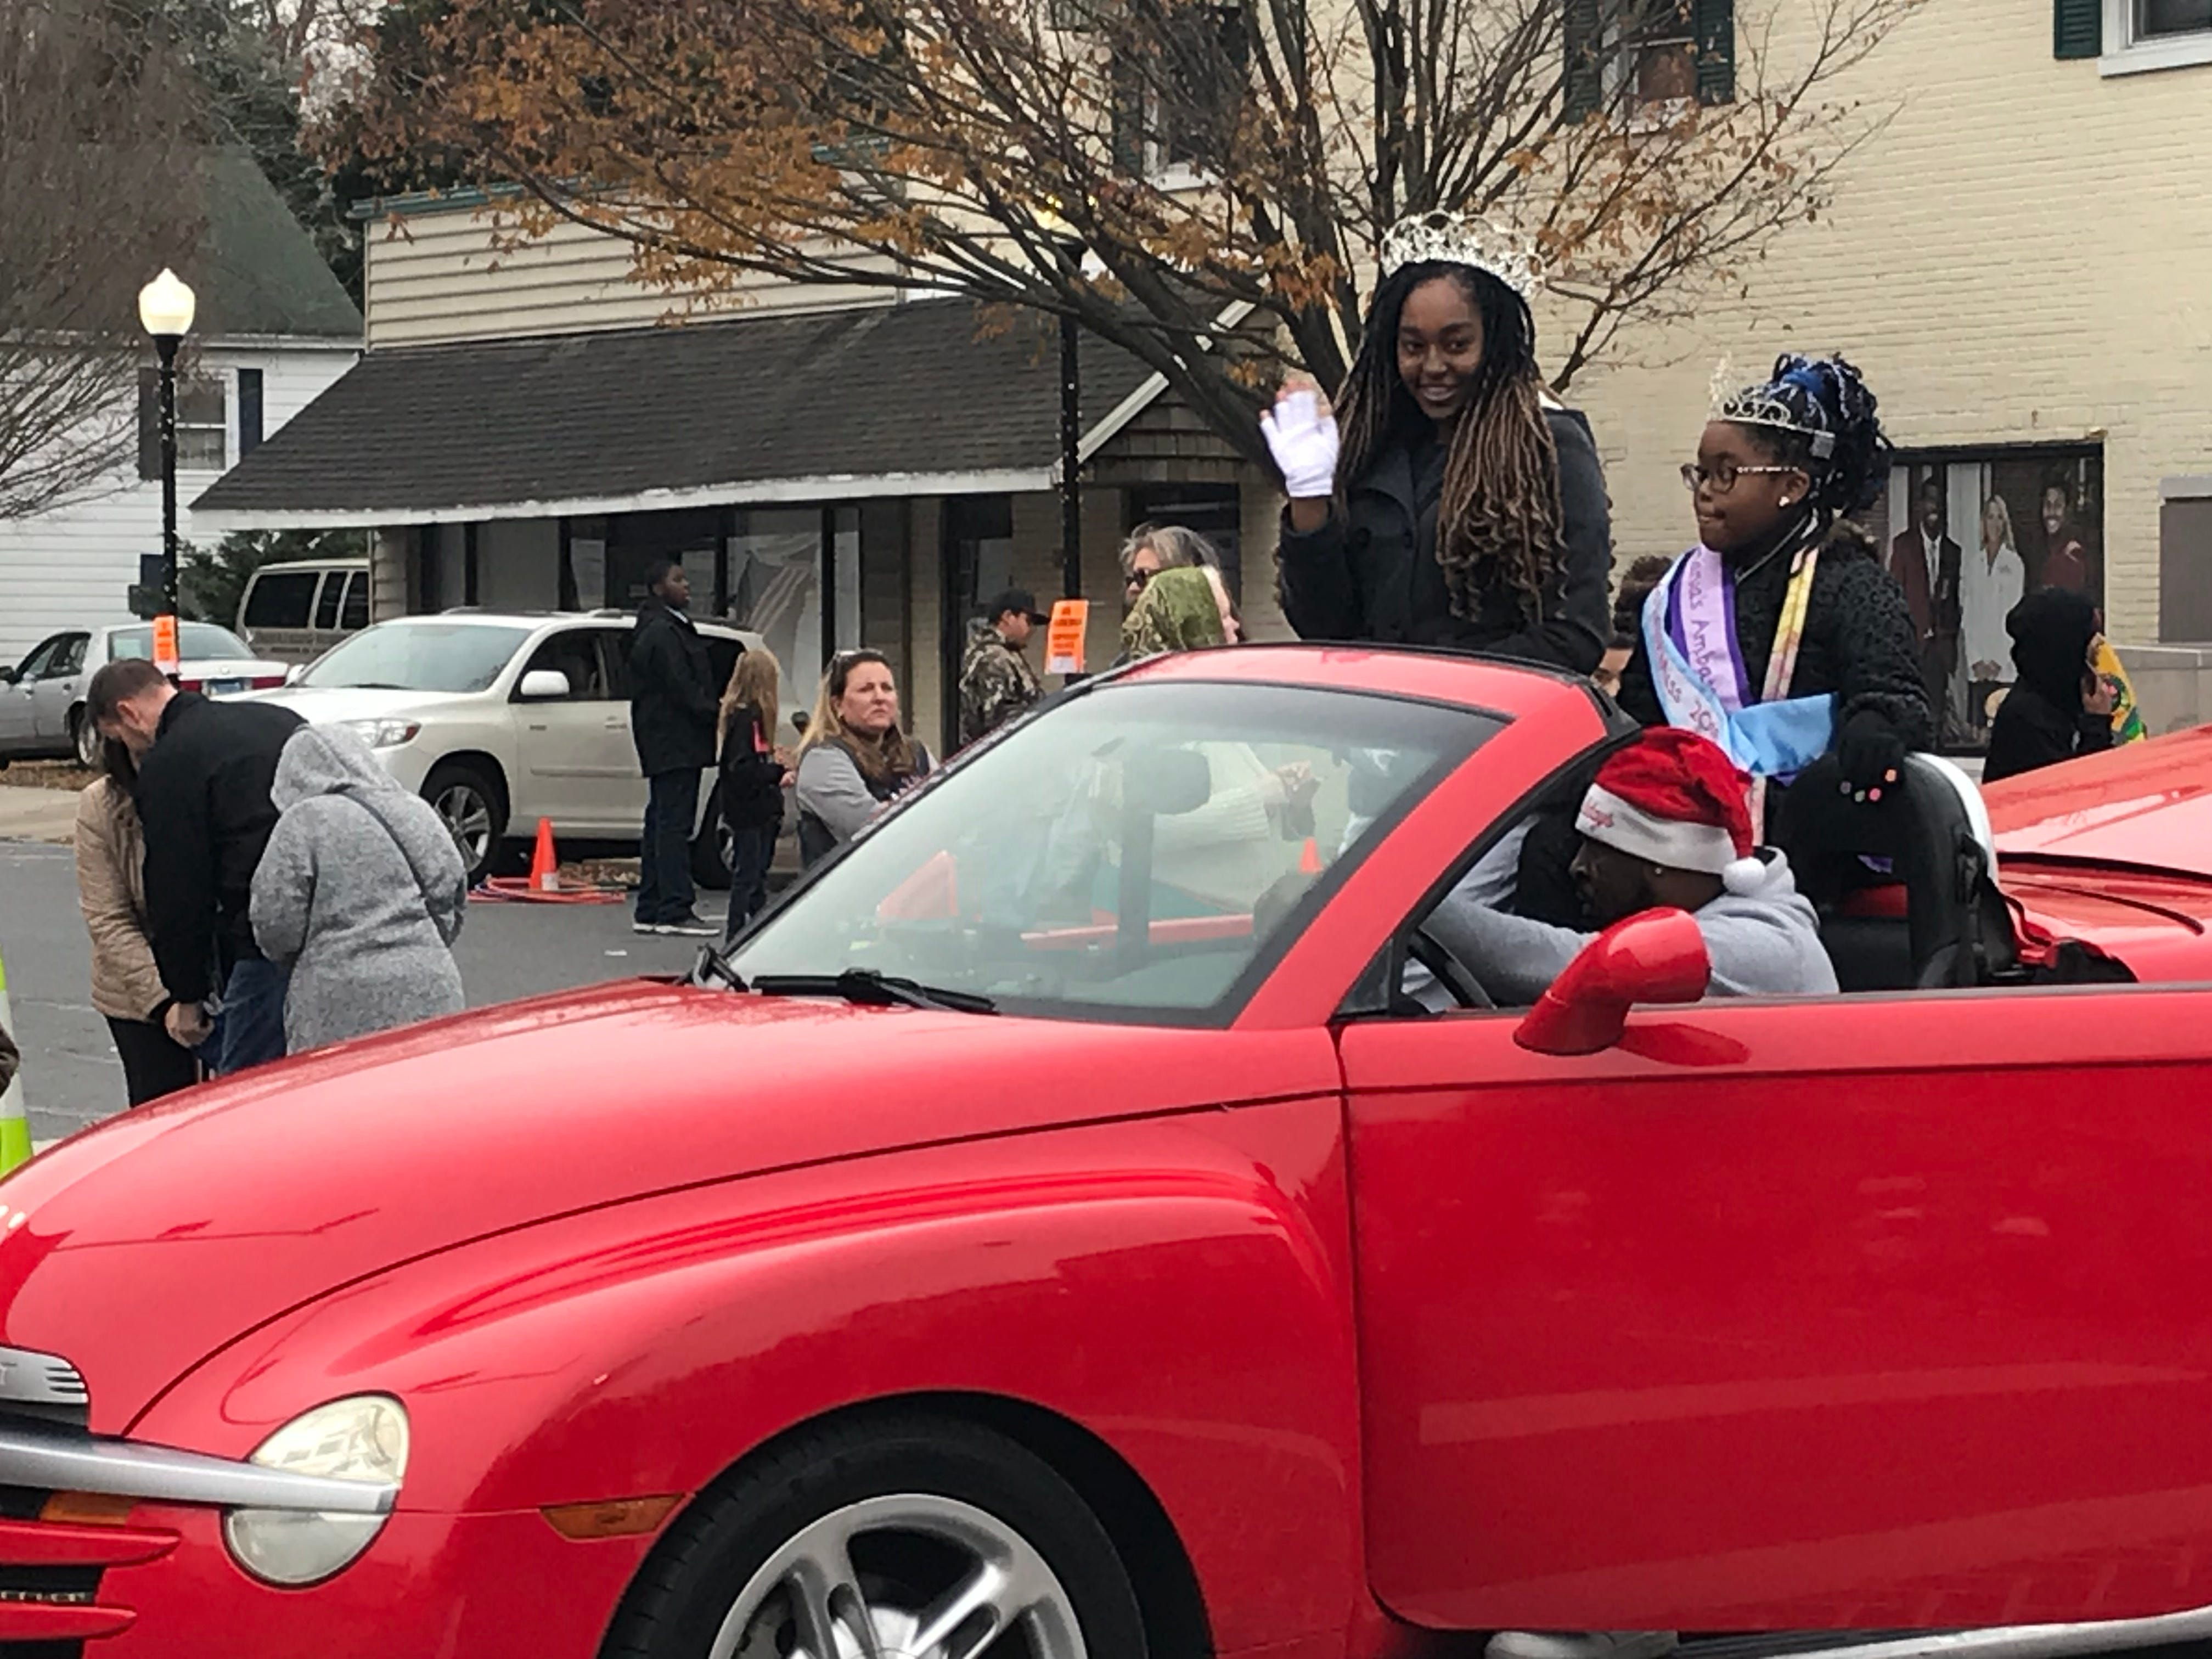 Winners of pageants got to ride in cars and on trucks in the parade.